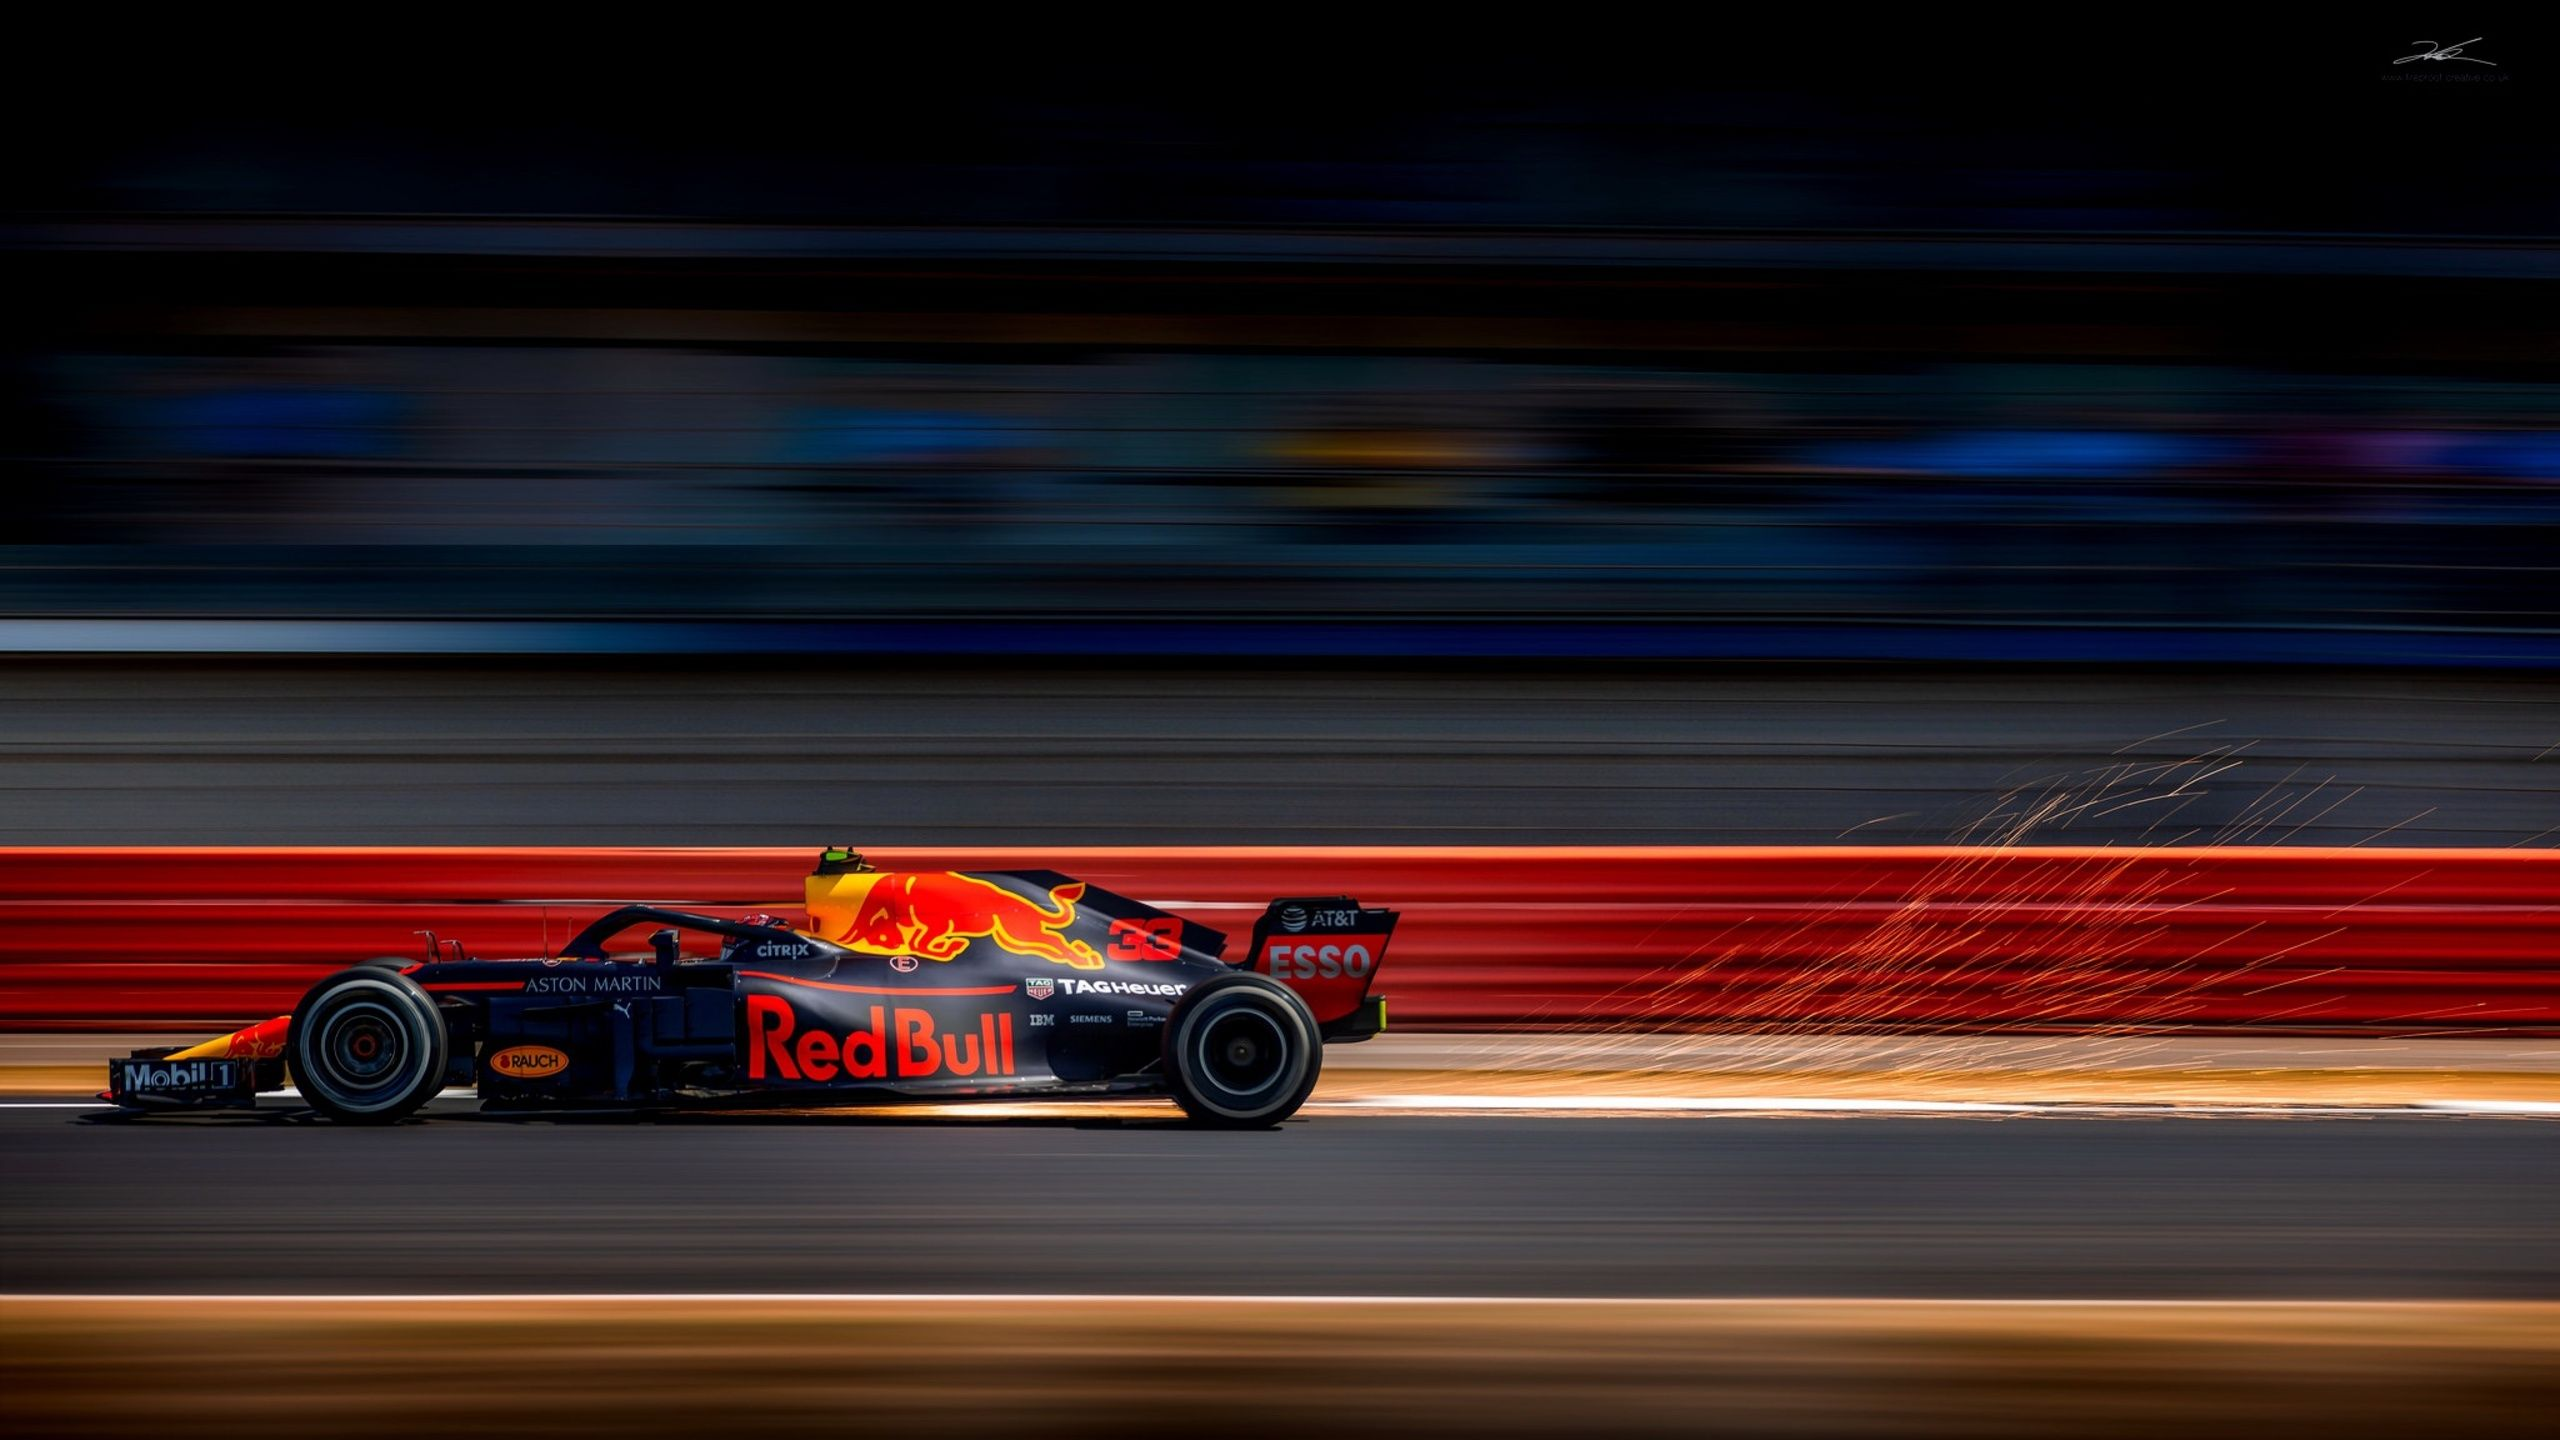 Red Bull Racing Teams Background 6